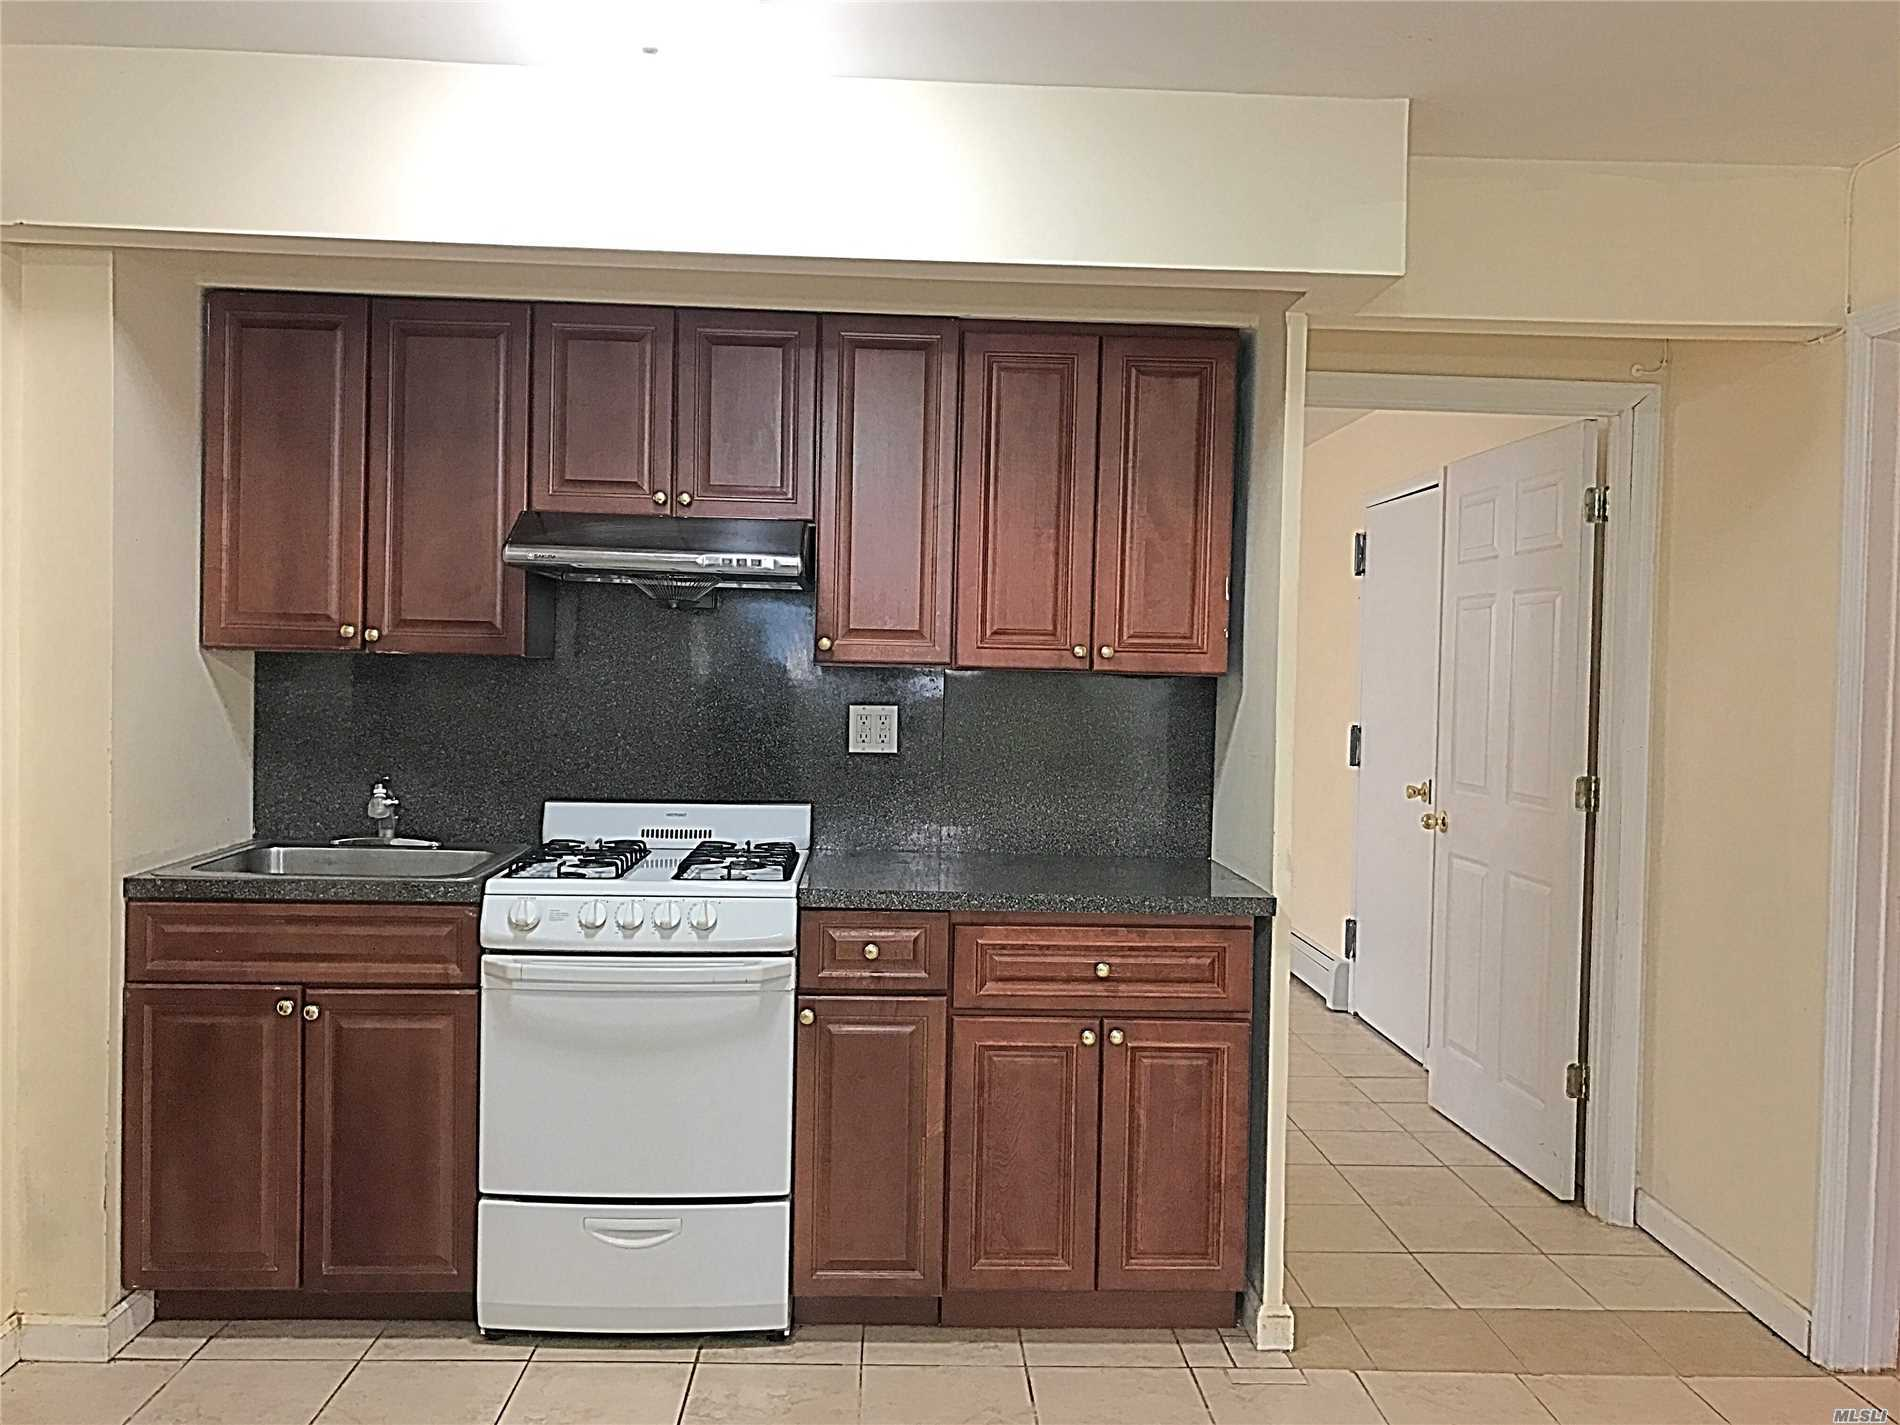 Best School Zone, 26 District Of Queens. Approx 900 Sqft Apartment Located Semi-Attached Brick House. House Only 11 Year Older. Has Independent Privacy Entrance, 1 Bedroom Or 2 Bedrooms Depend On You. Walk To Q17/Q88/Q65 Bus Stops. 26 School District With P.S. 173/Jhs 216/Francis Lewis High School.